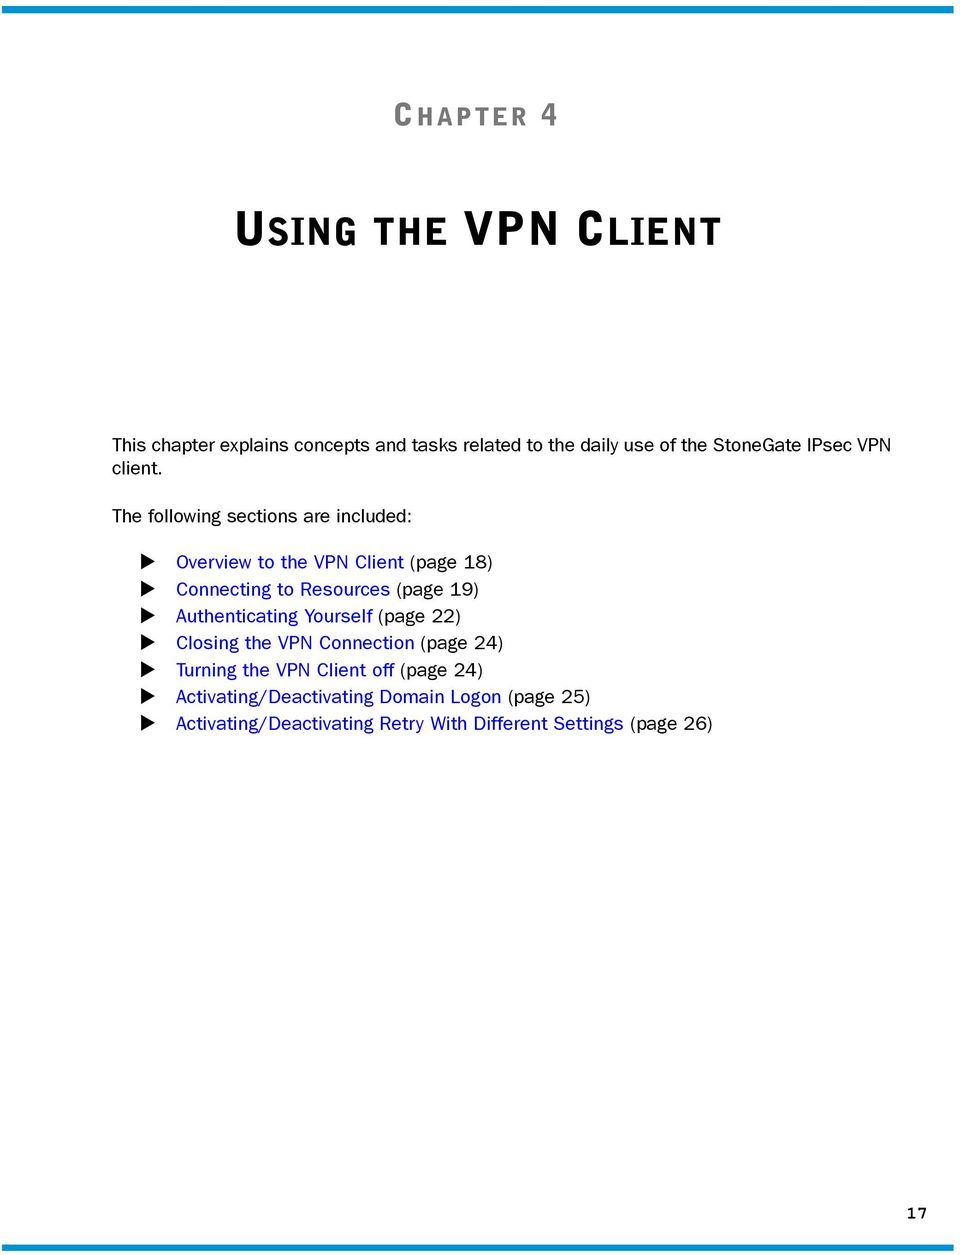 The following sections are included: Overview to the VPN Client (page 18) Connecting to Resources (page 19)